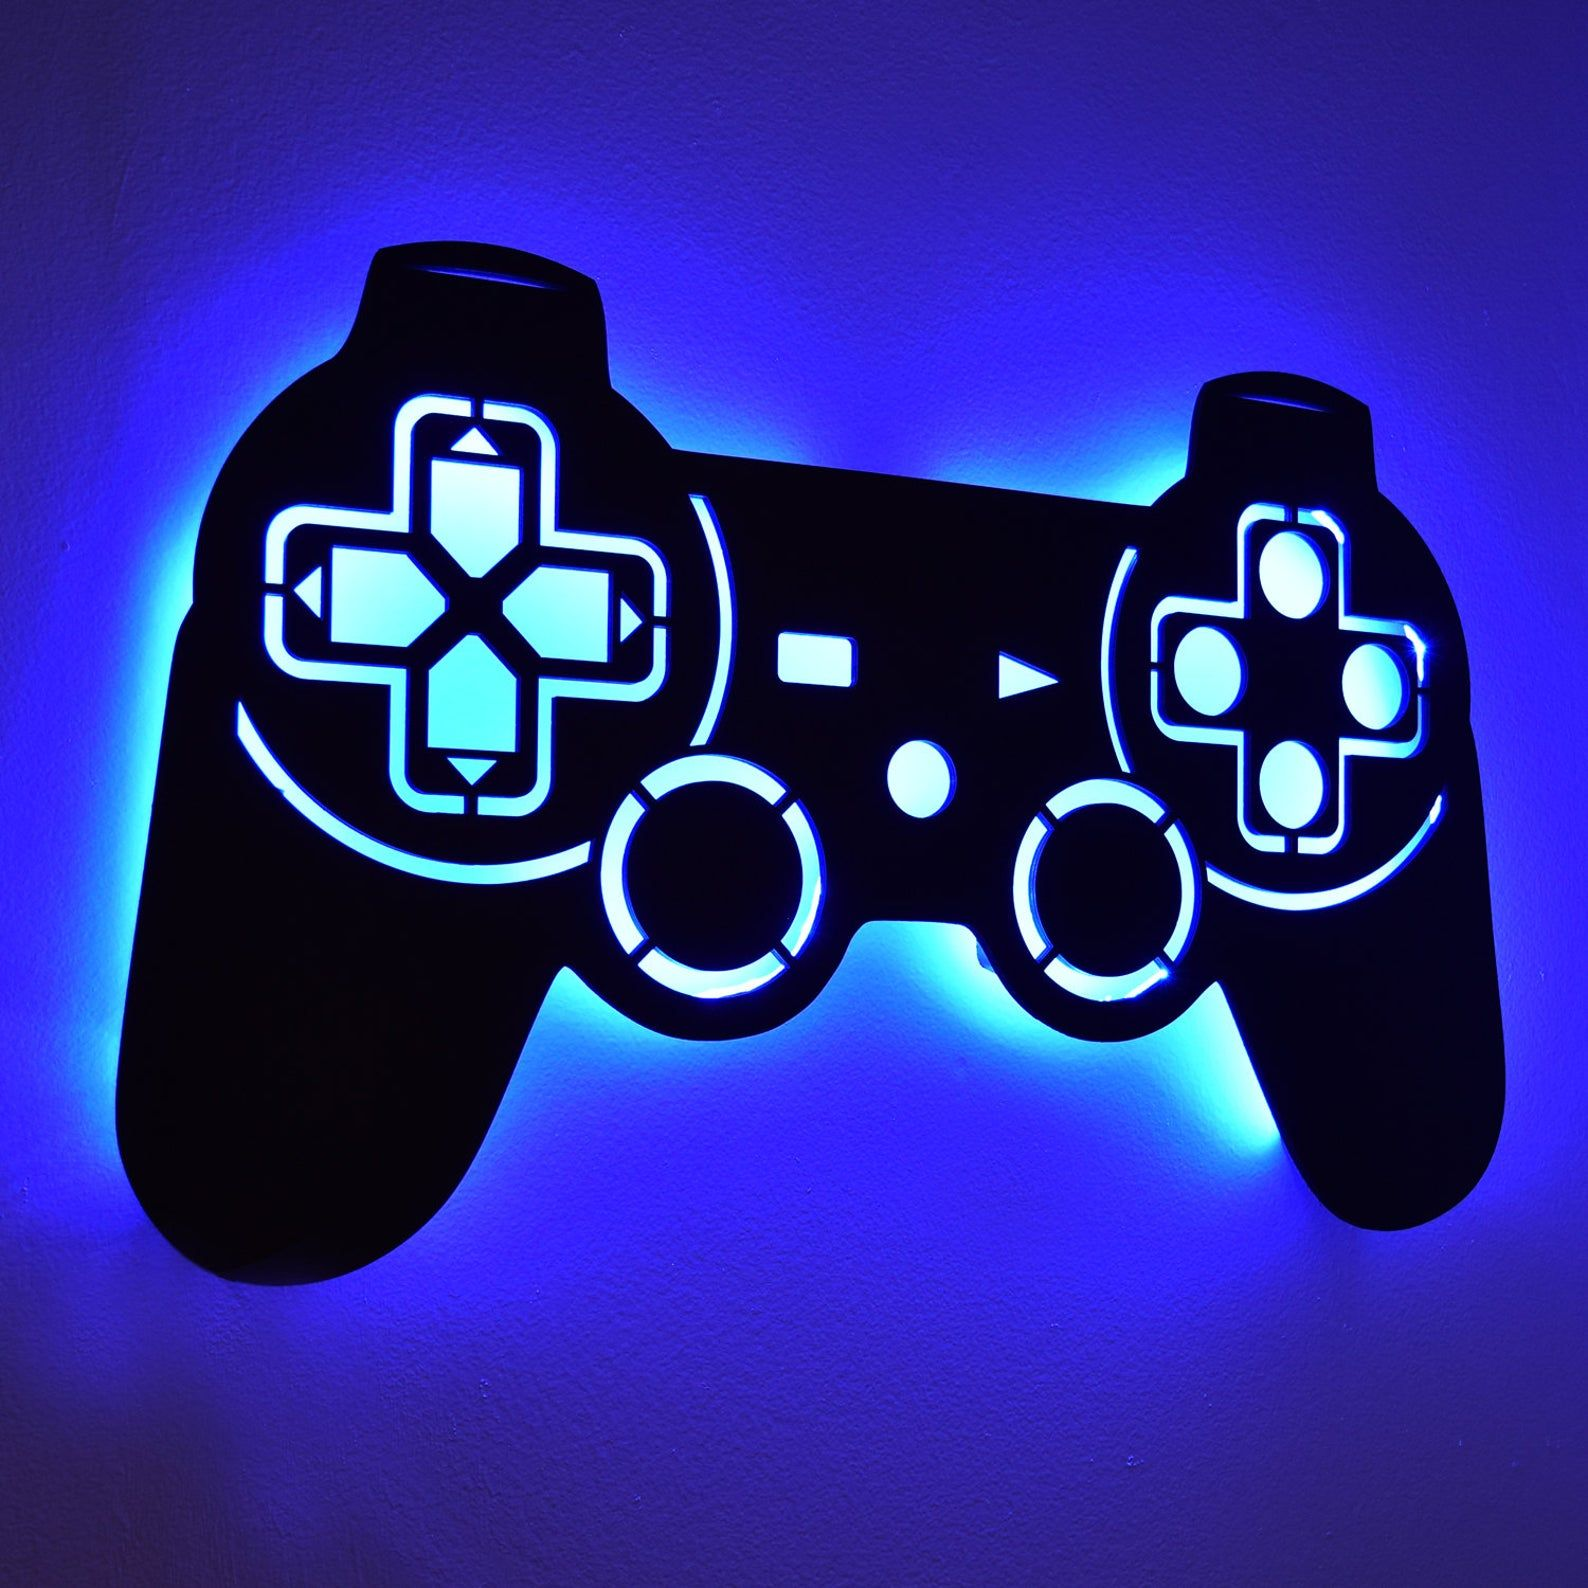 Led Lighted Playstation Controller Wall Art Video Game Art Etsy Game Room Decor Video Game Room Design Game Room